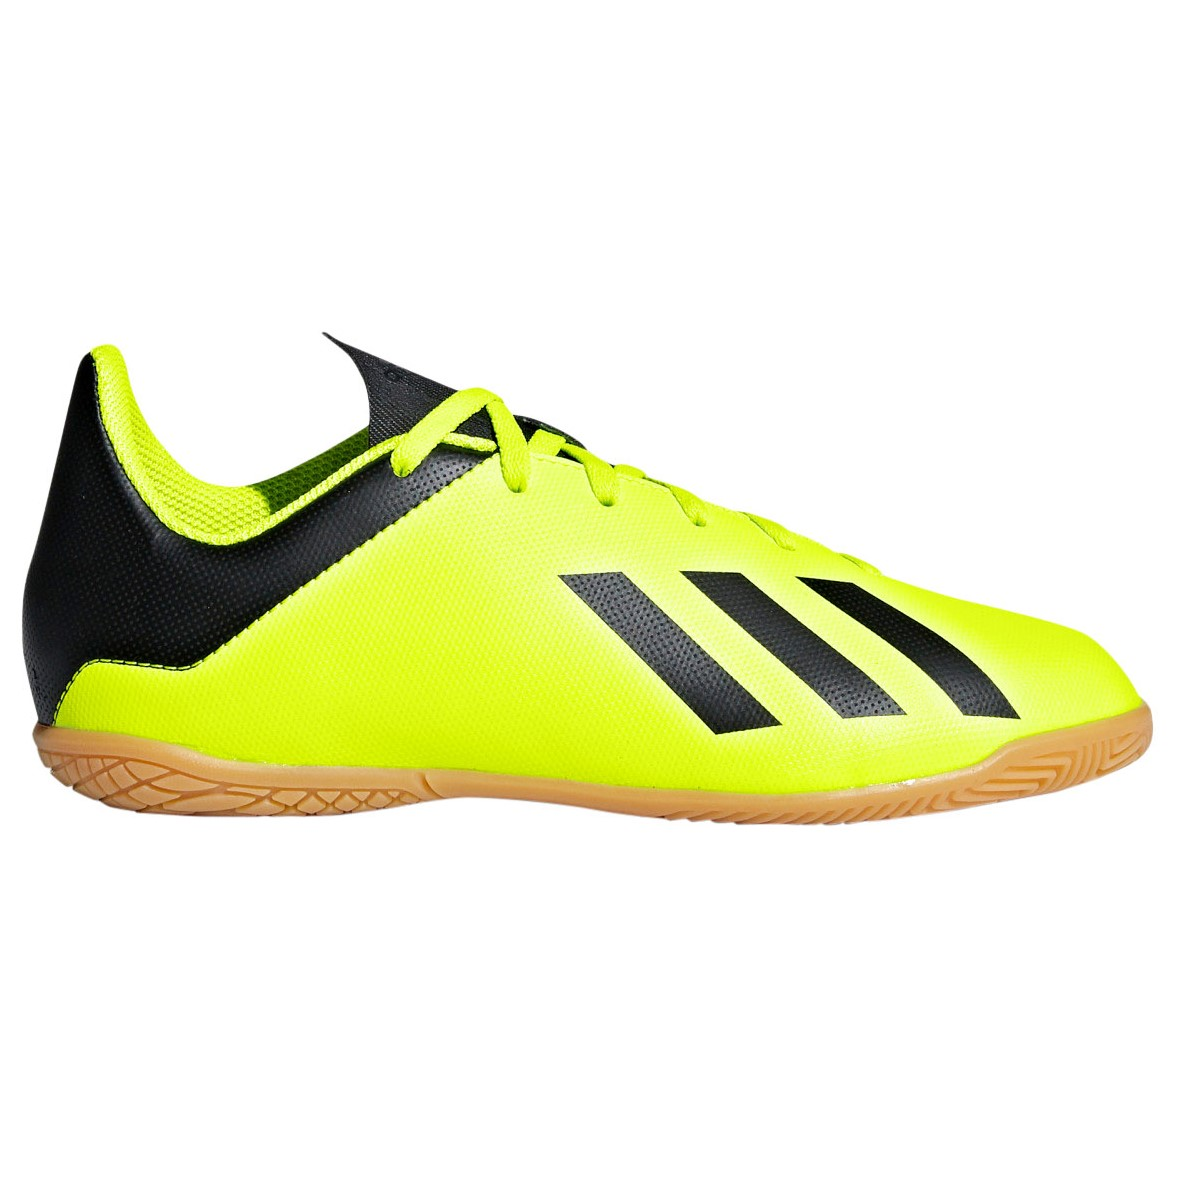 new style f8f74 7f347 Adidas X Tango 18.4 Kids Futsal Indoor Soccer Boots - Solar Yellow Core  Black